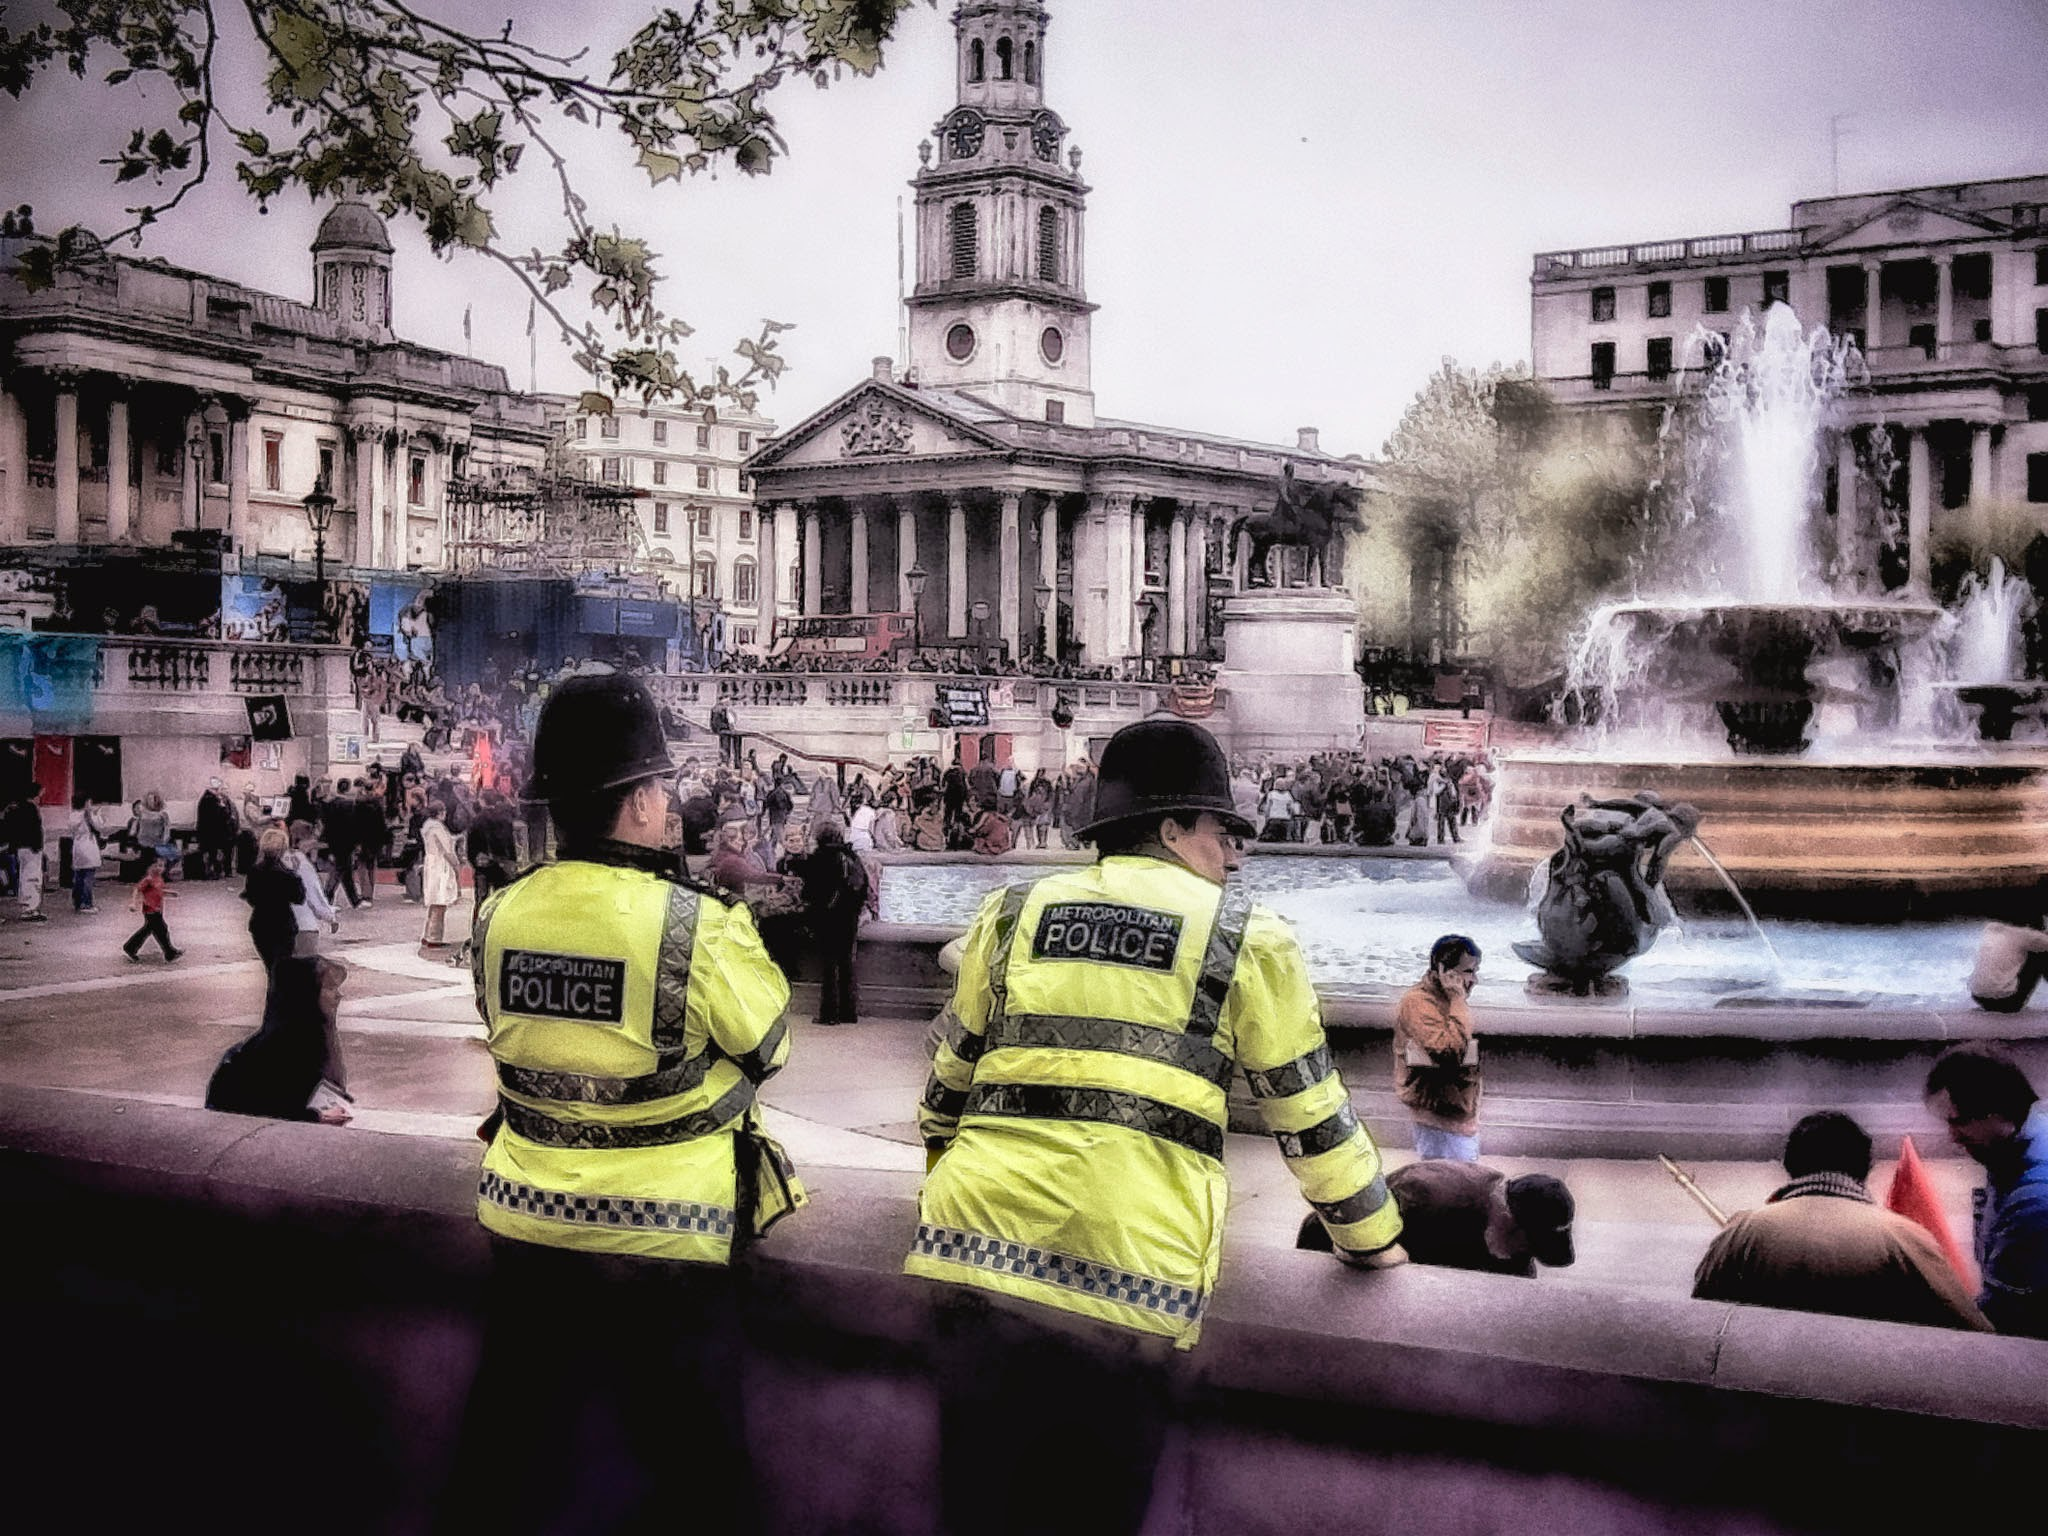 Photo: Police look on while May Day labor protests proceed. London - May 1, 2004.